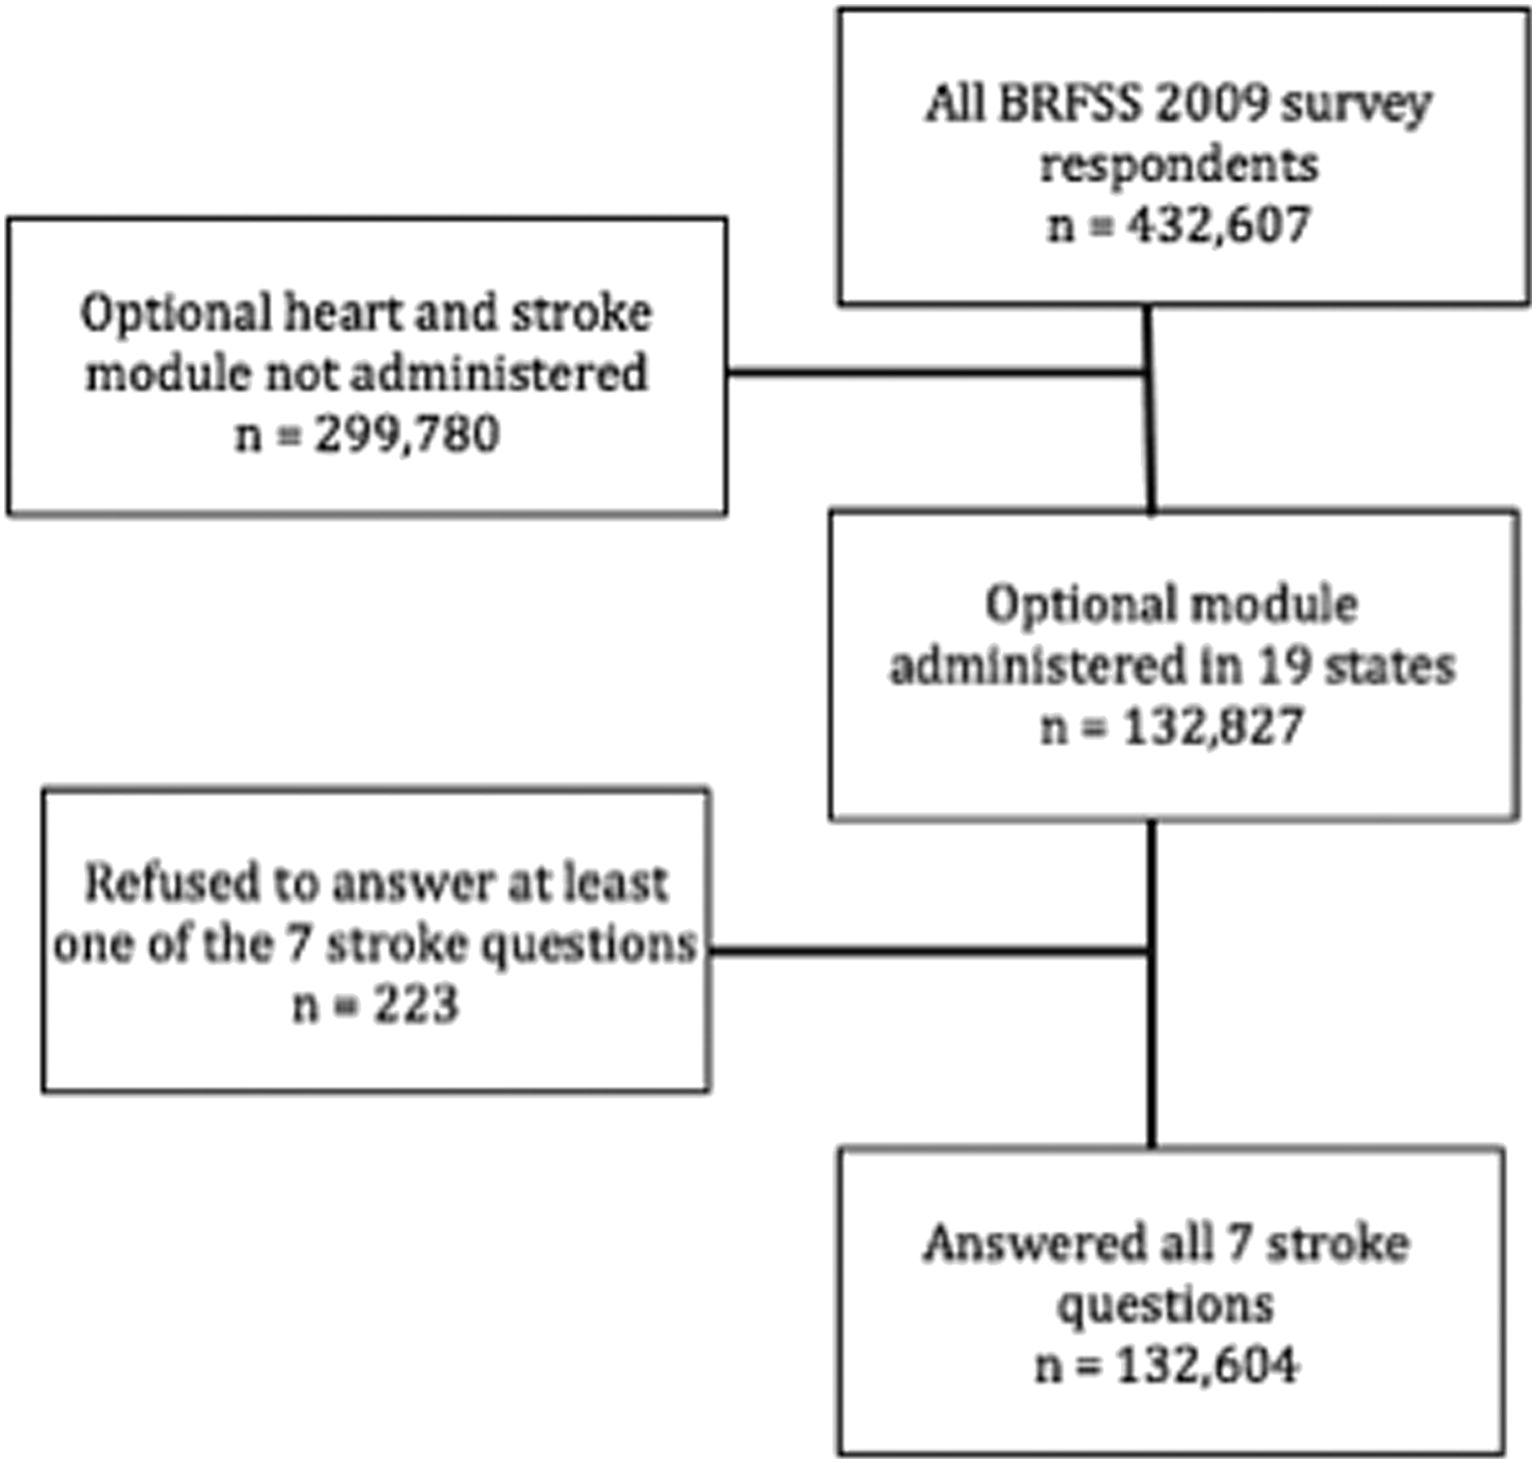 brief analysis of gender differences Gender differences in short- and long-term mortality in the vienna stemi registry   a landmark analysis was performed to assess long-term all-cause mortality.